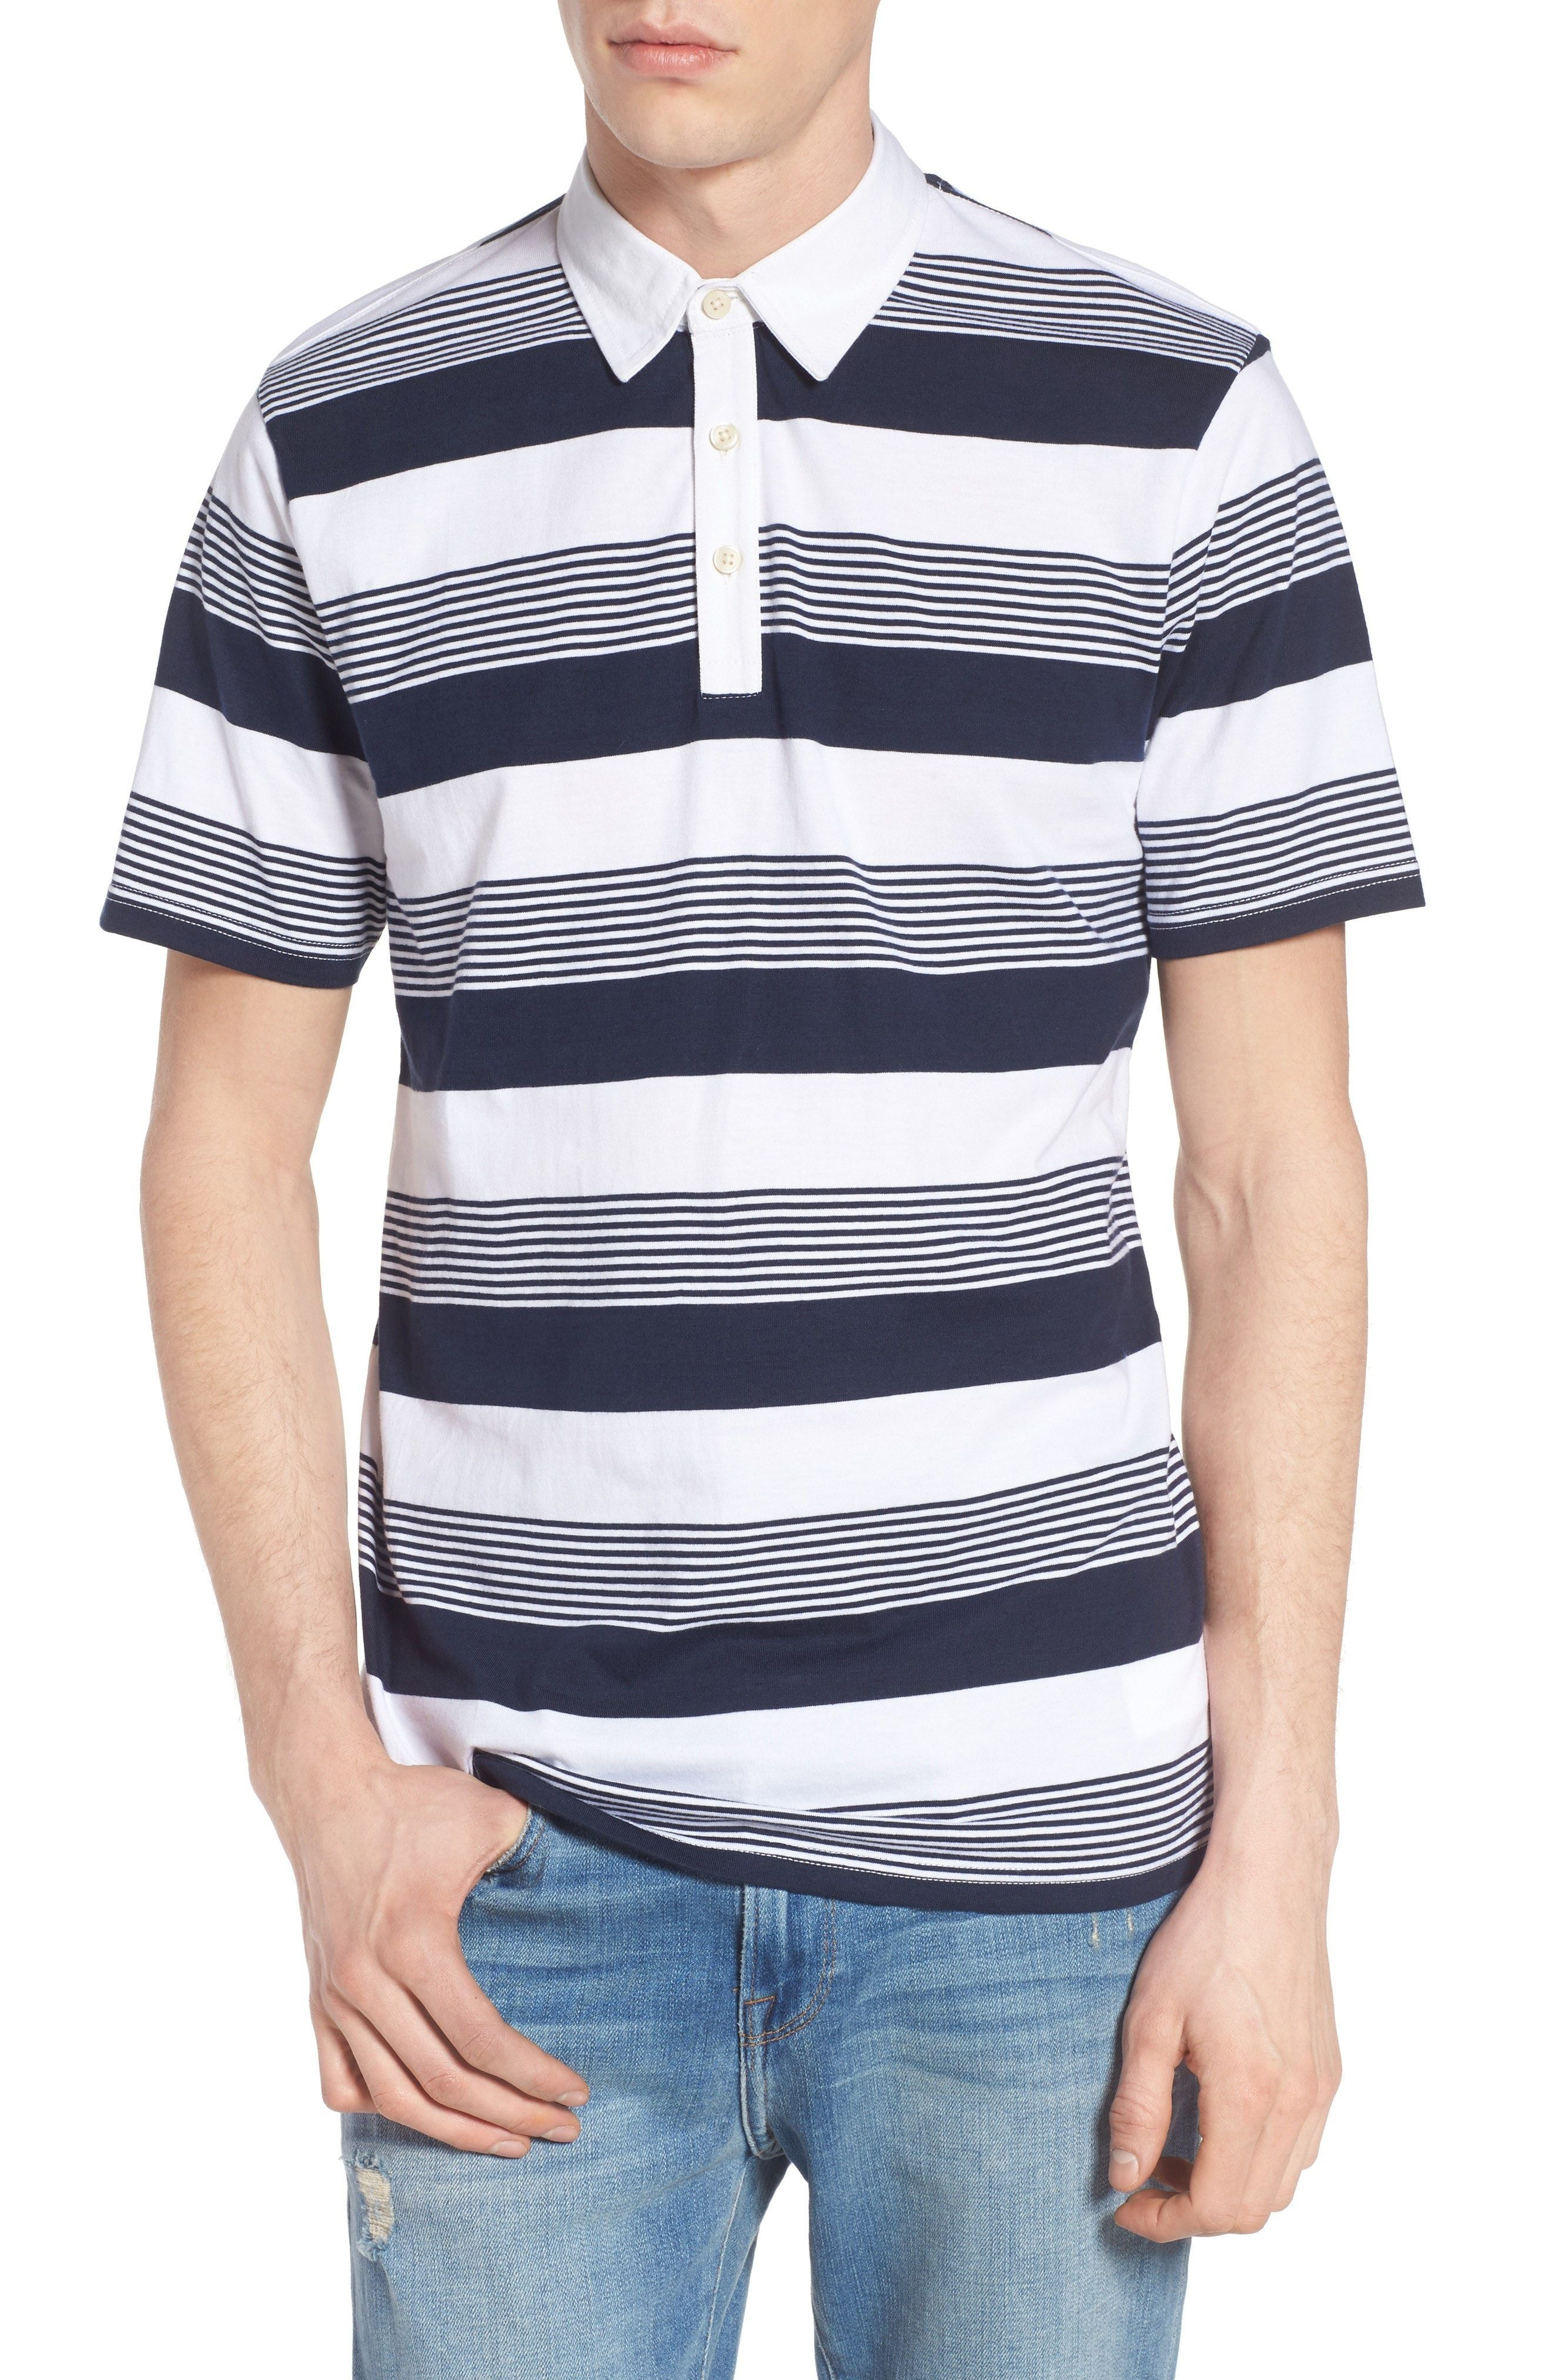 9bd455a72e New Vans Chima Stripe Jersey Polo